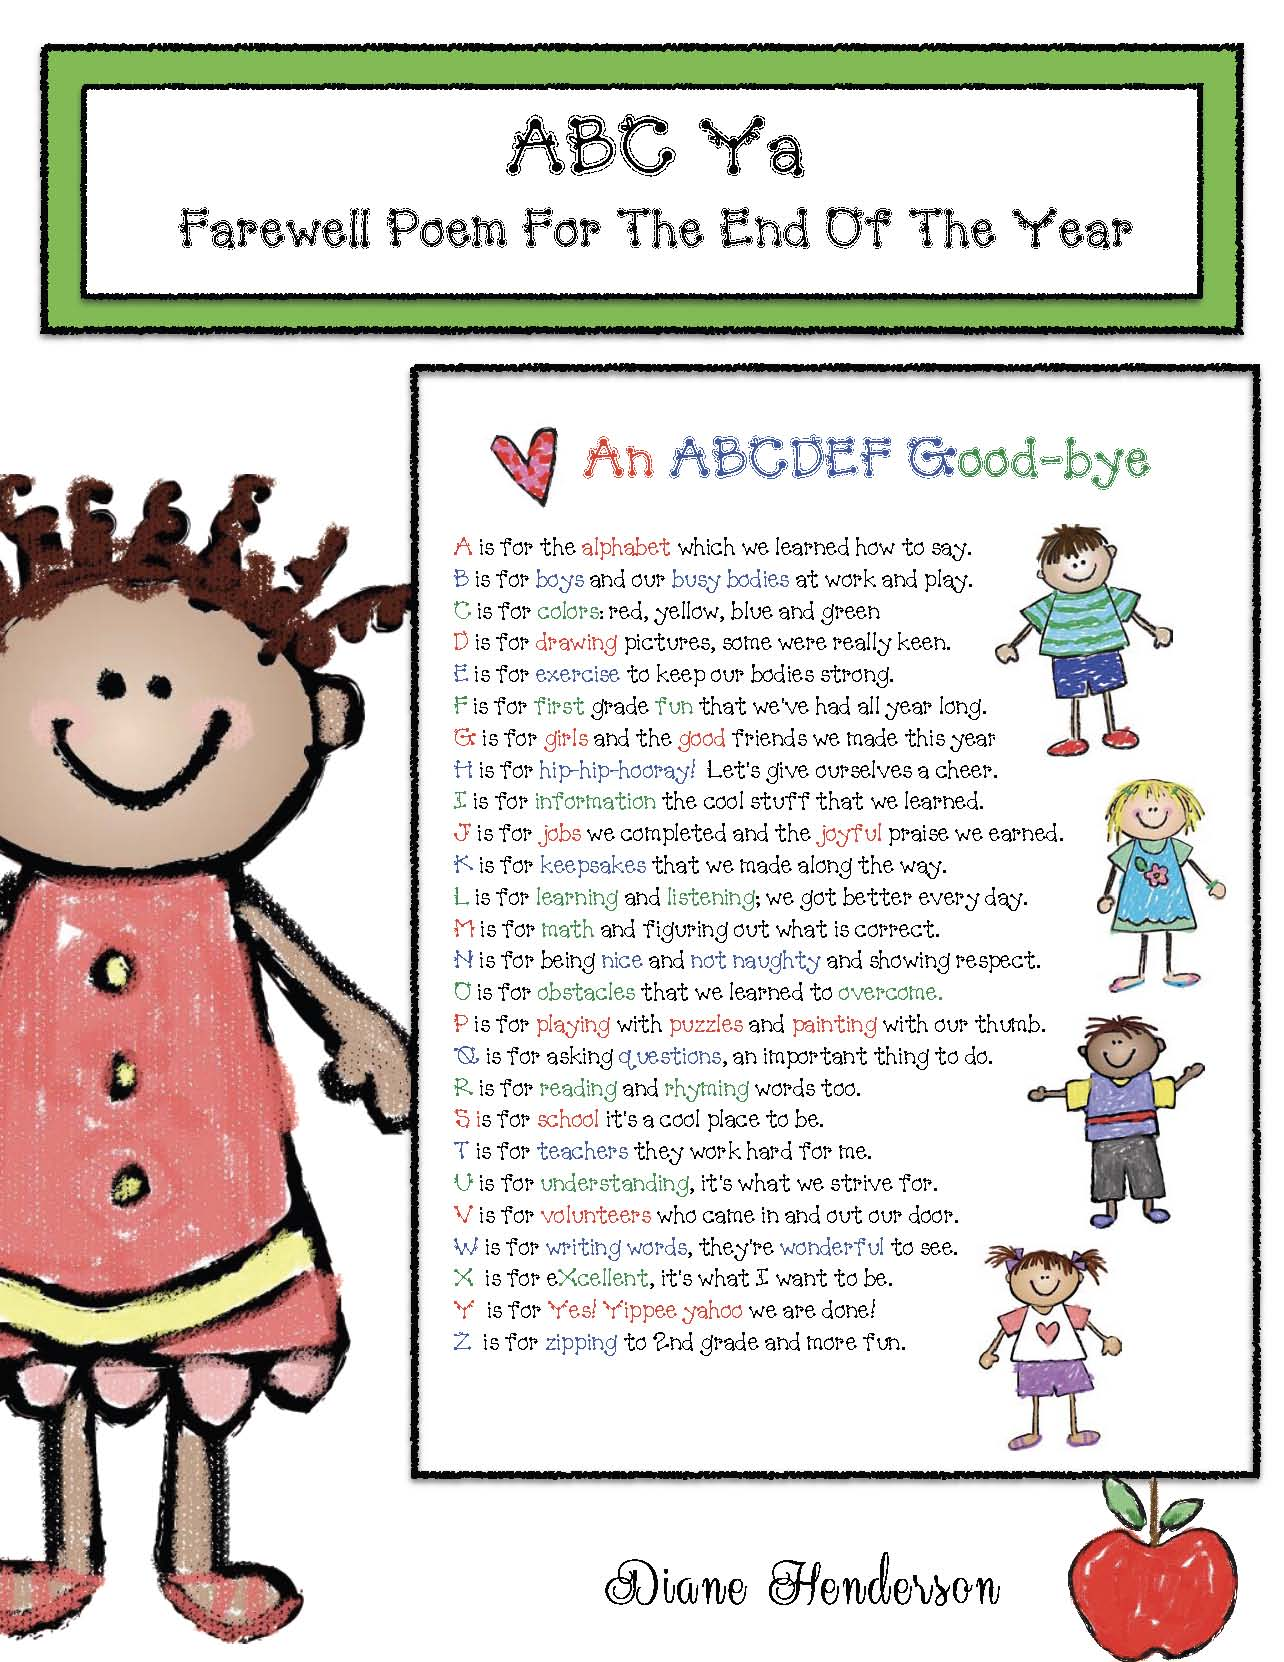 end of the year poem, memory book ideas, end of the year activities, note from teacher for the end of the year